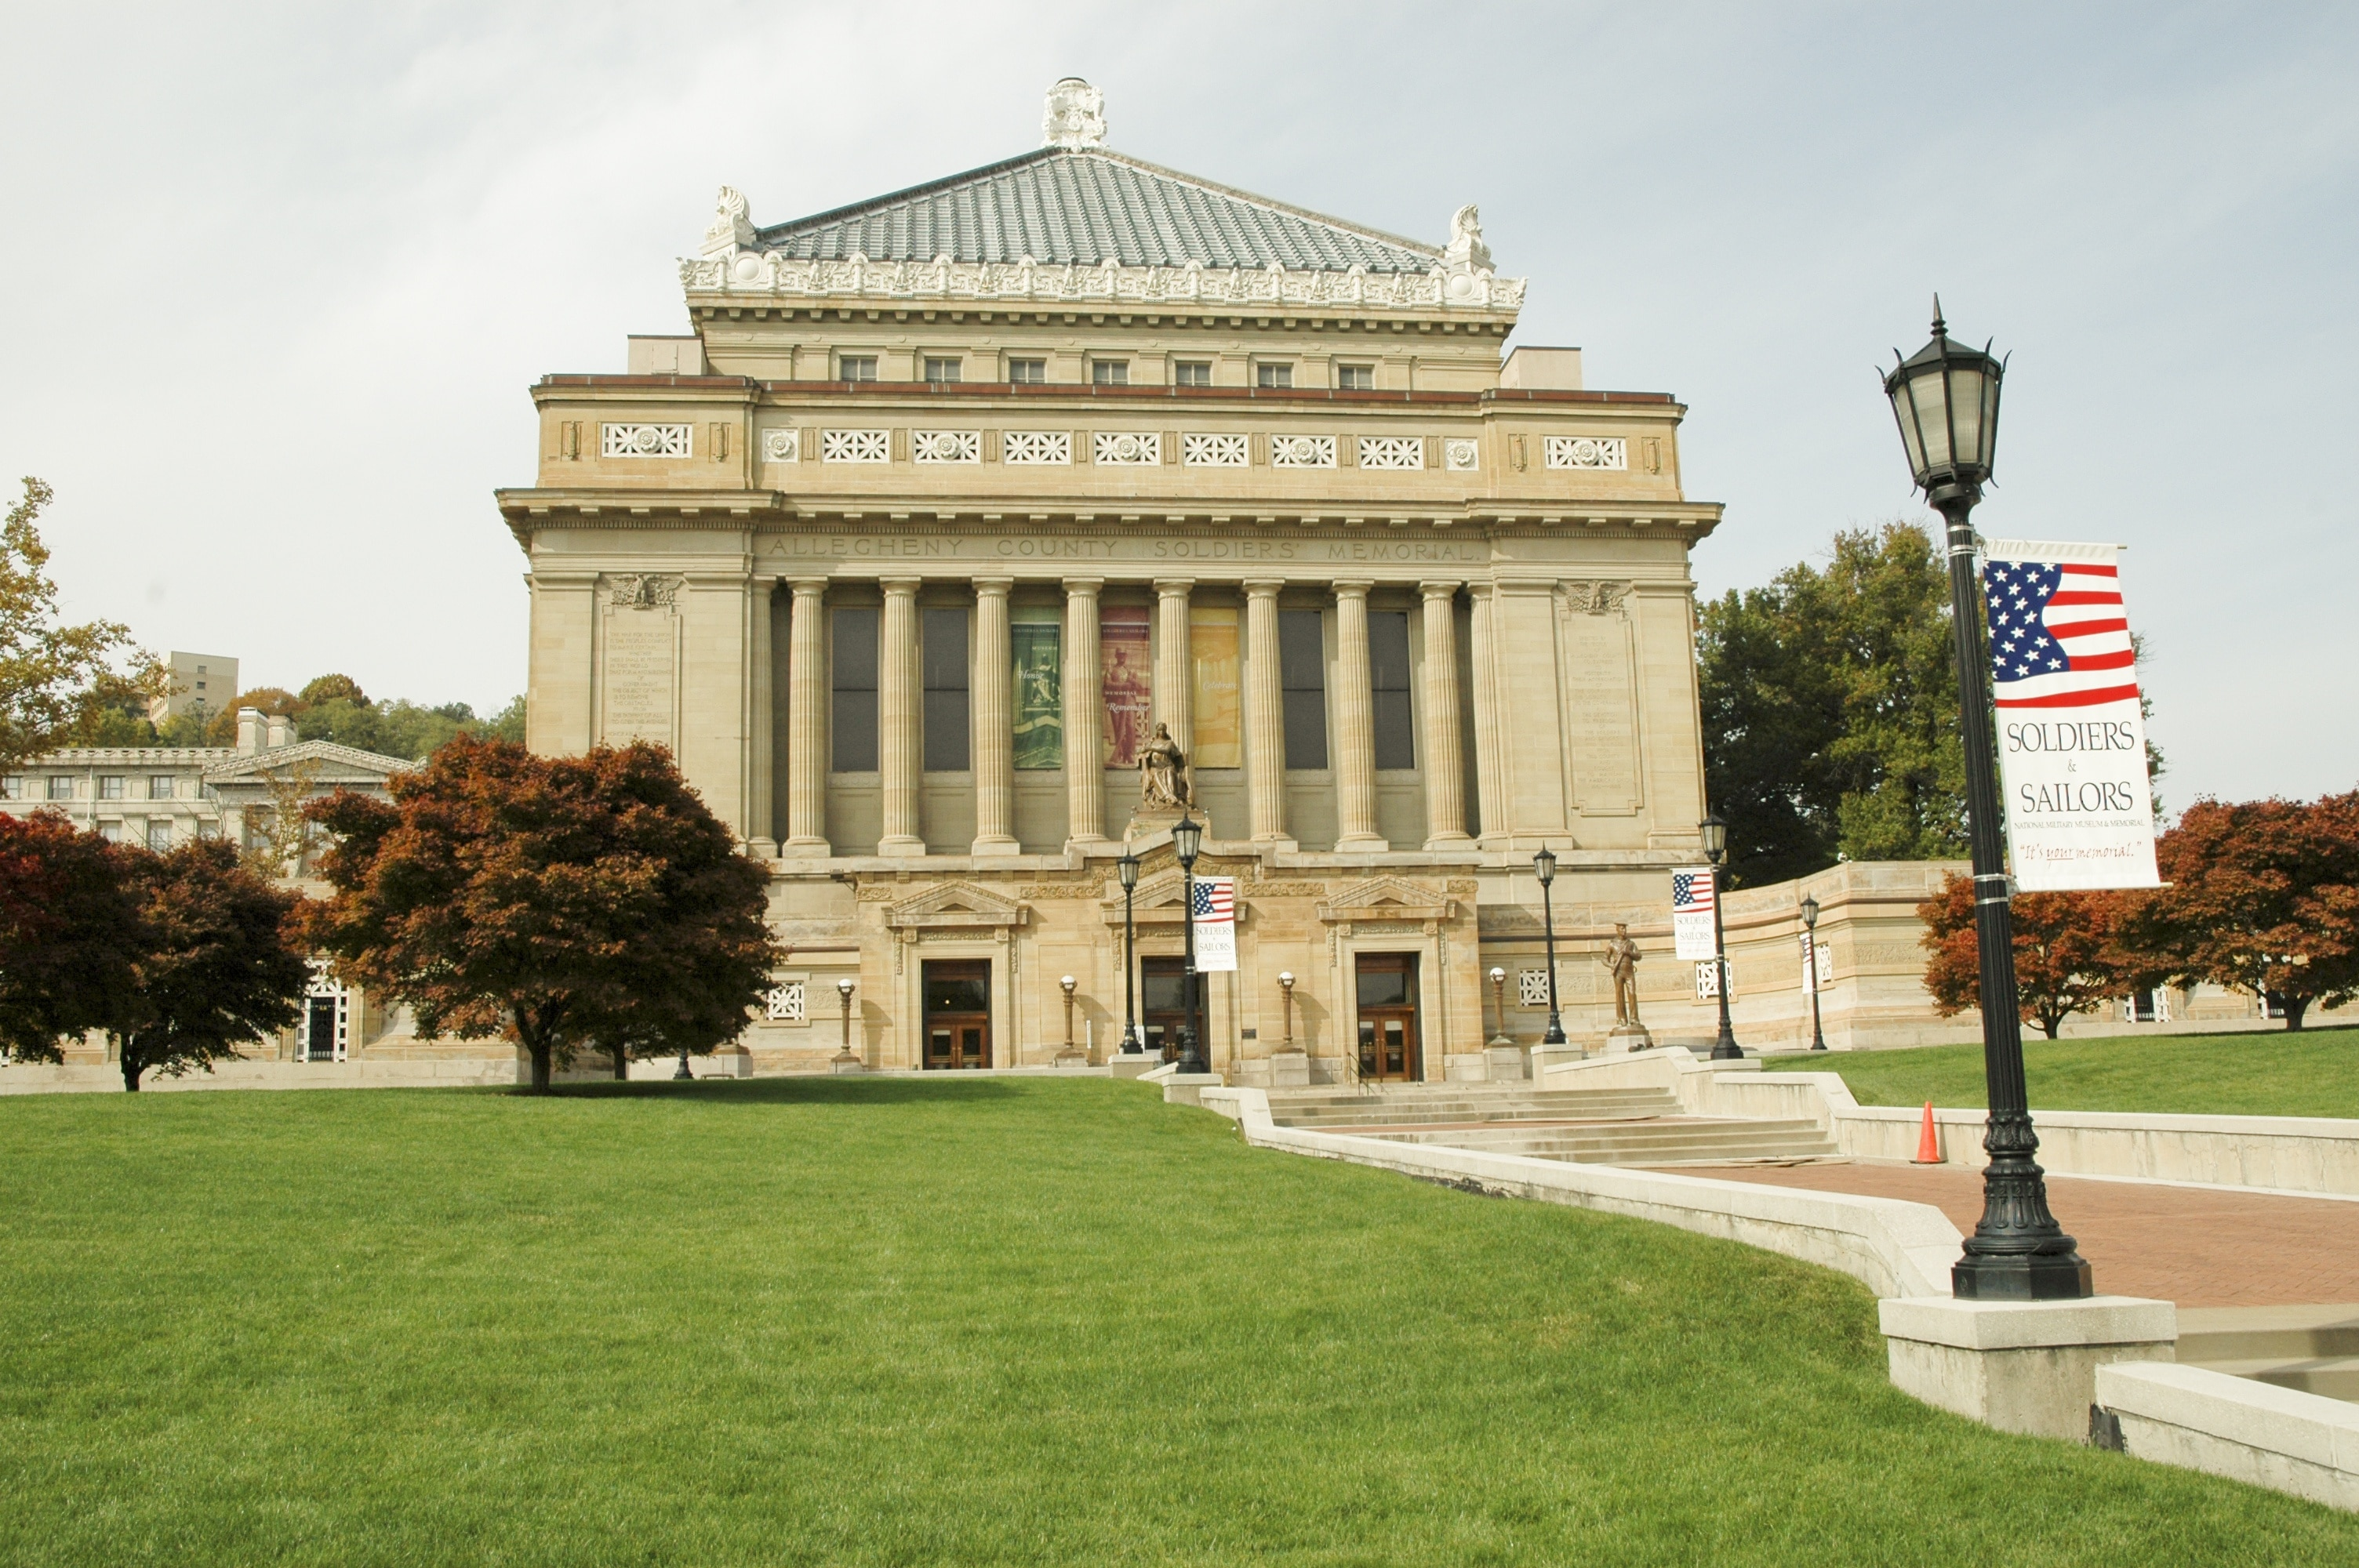 Soldiers and Sailors Memorial Hall and Museum, Pittsburgh, Pennsylvania, United States of America